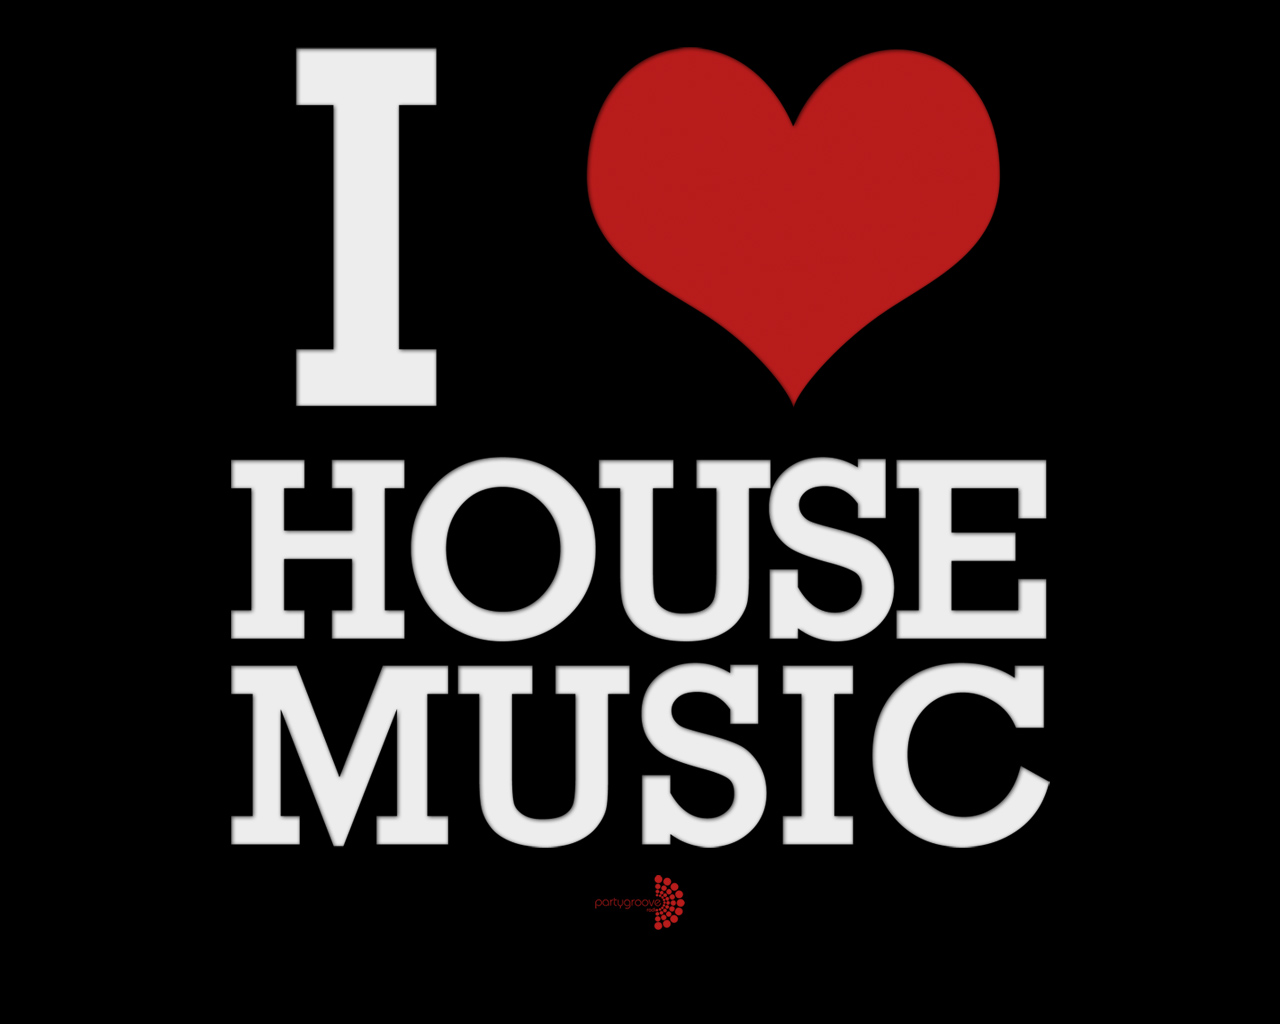 House music quotes quotesgram for Best house music playlist